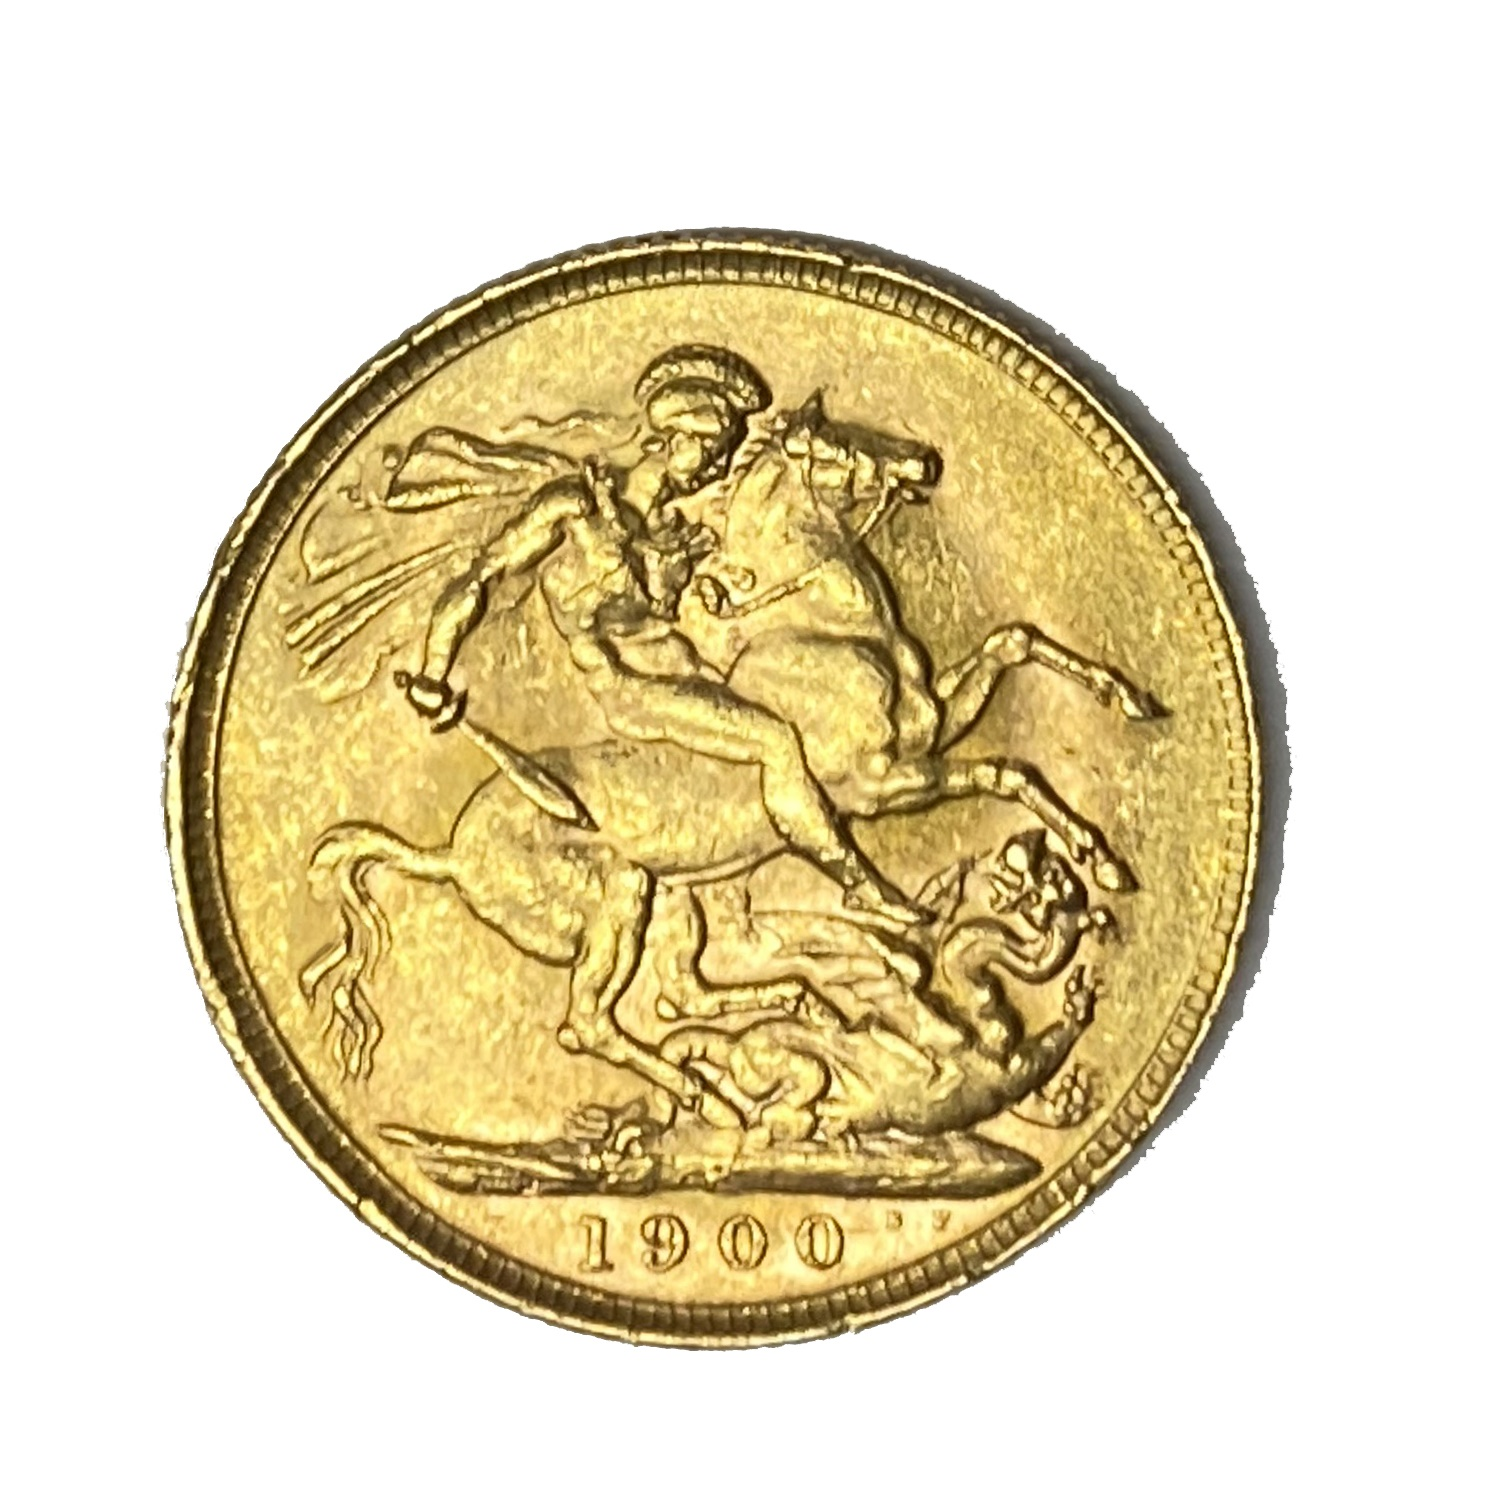 Queen Victoria gold Sovereign coin, Perth mint, 1900 - Image 2 of 2